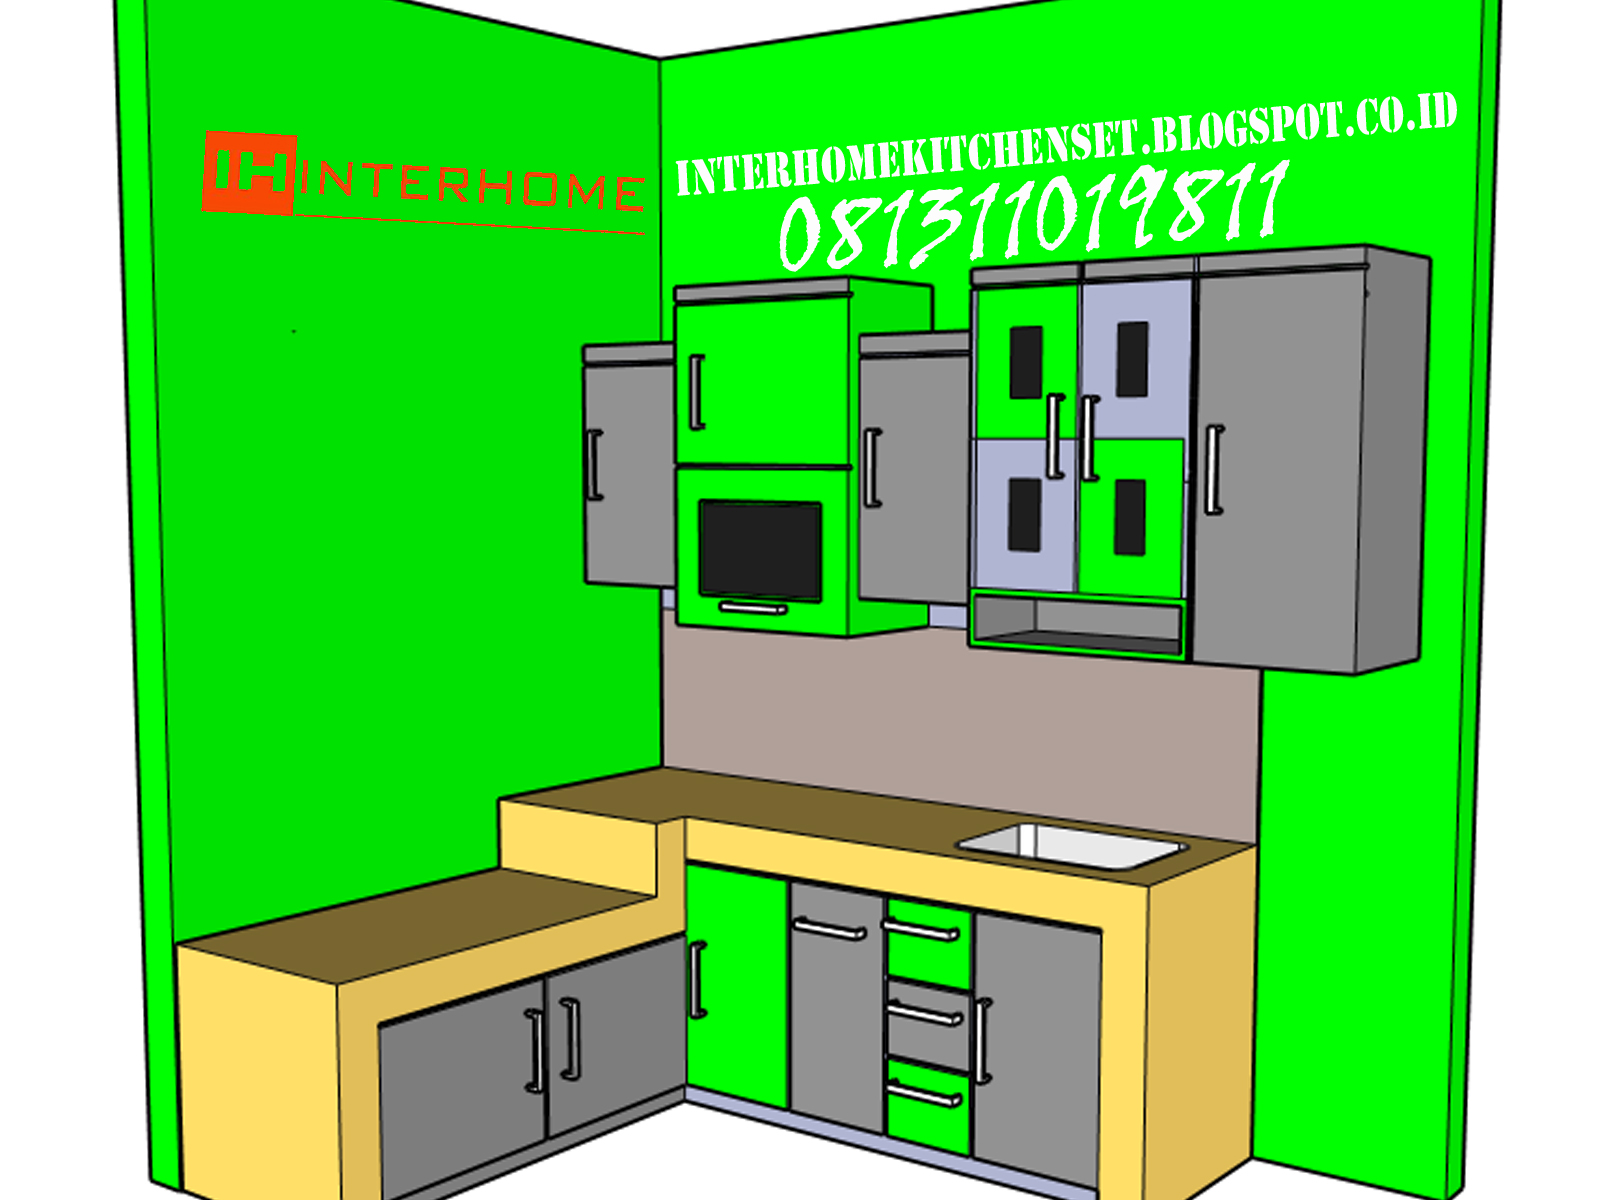 Interhome kitchen set murah gading serpong bsd for Harga kitchen set minimalis per meter